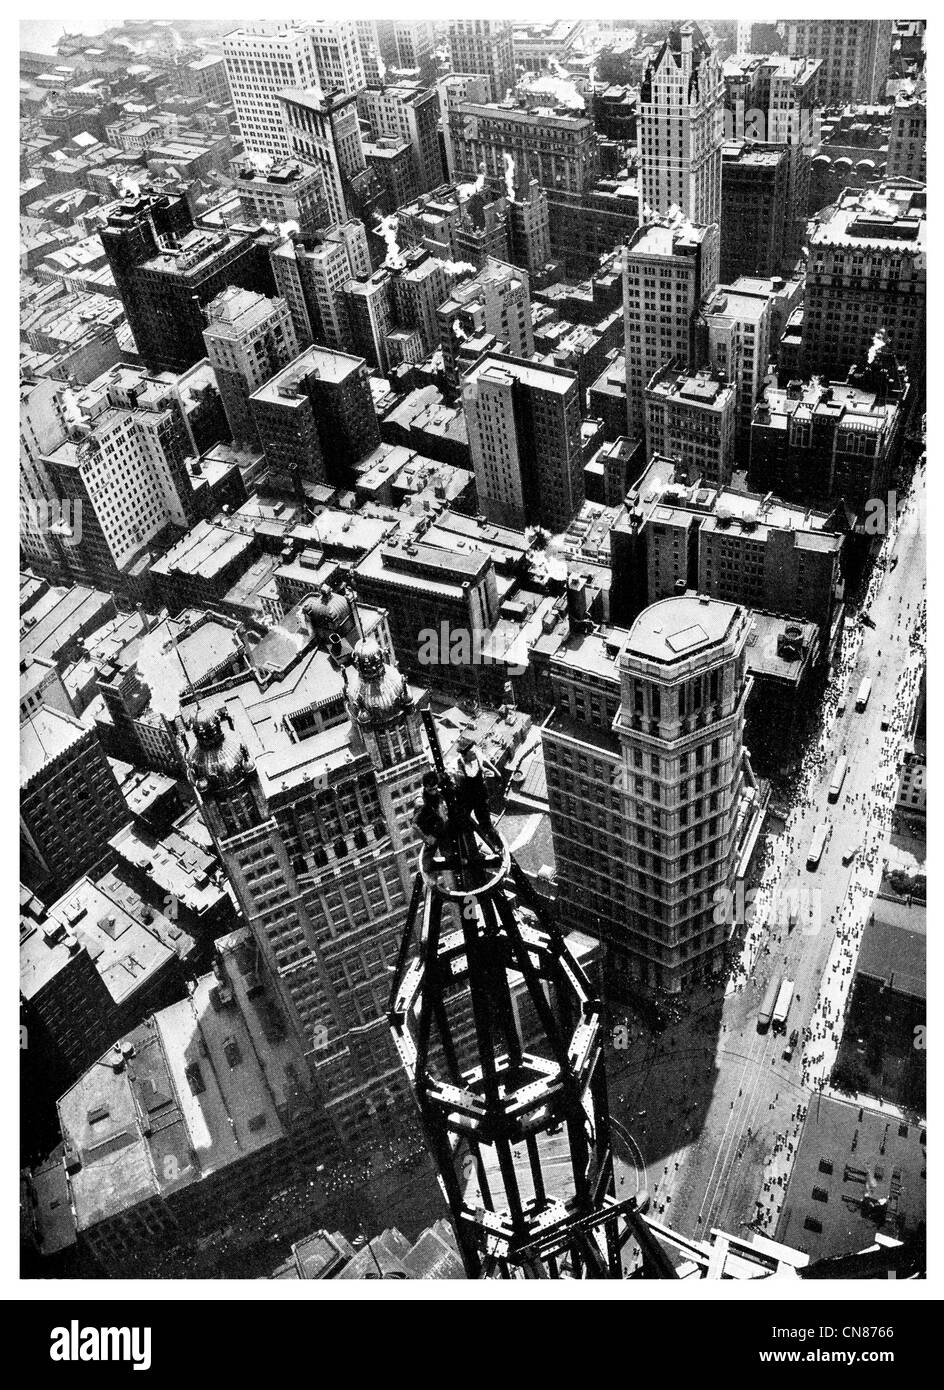 First published 1916 New York City Sky Scrapers - Stock Image